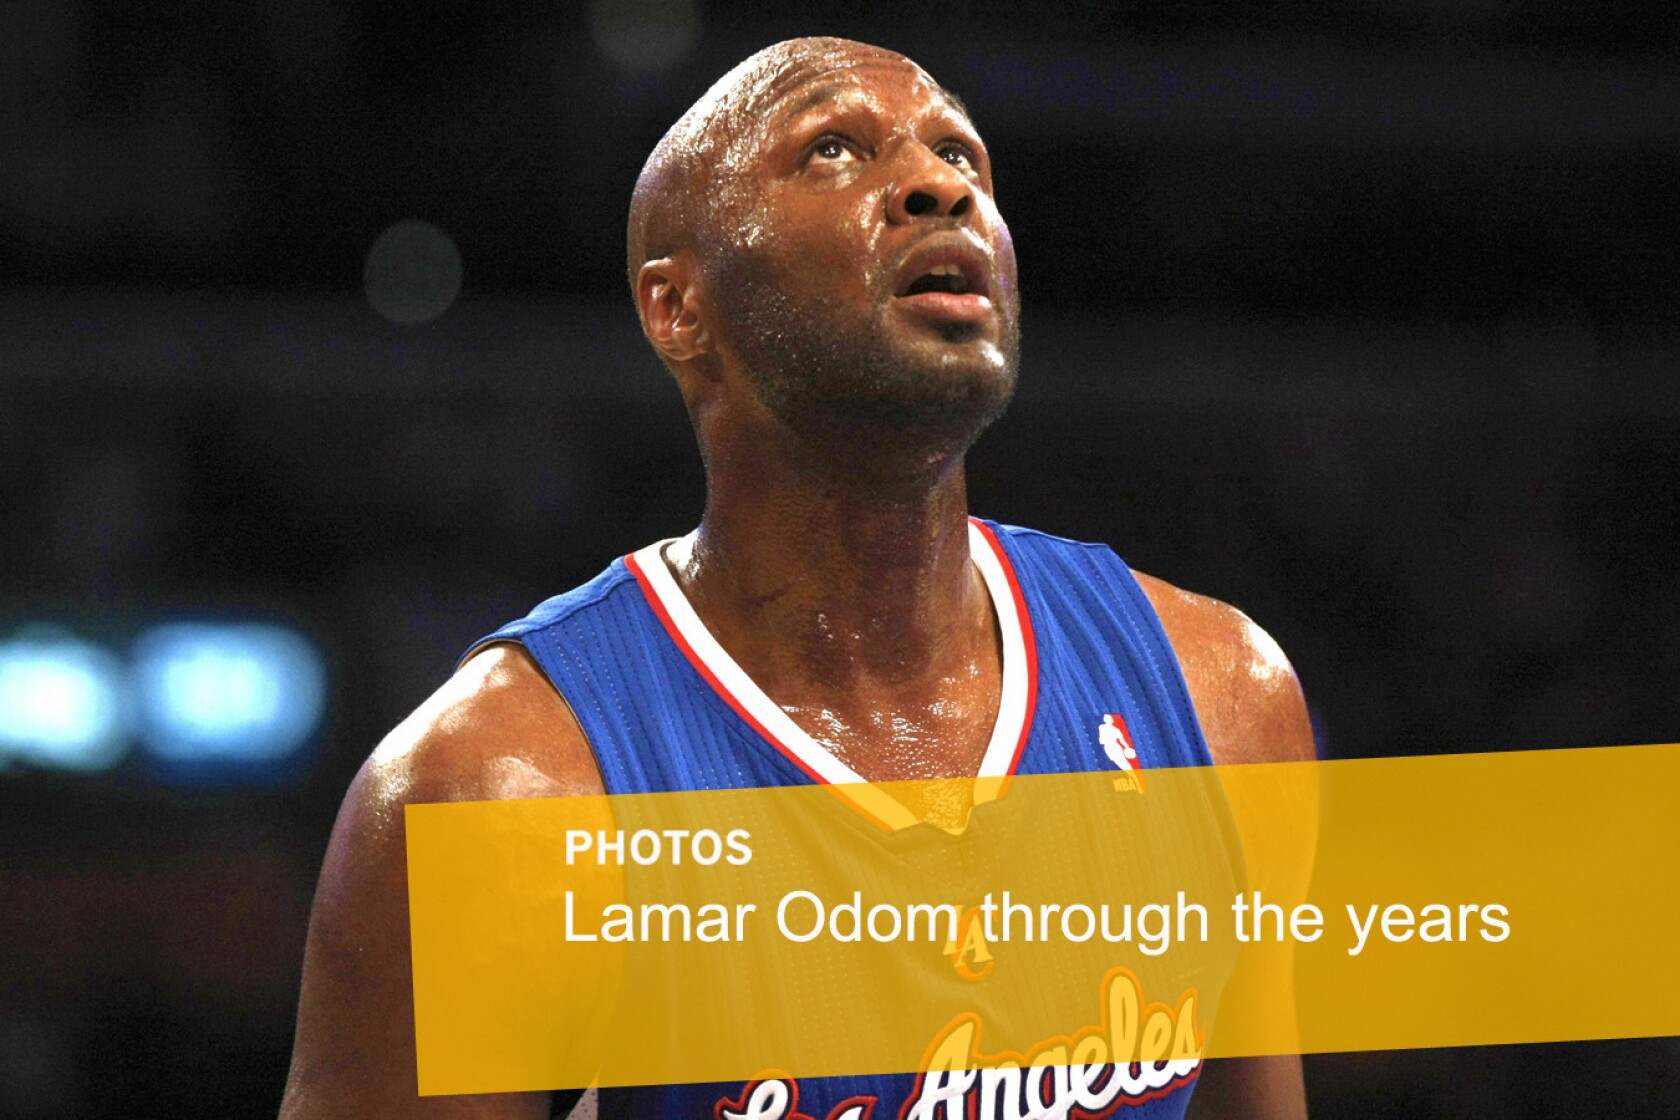 Lamar Odom took cocaine and 10 doses of a Viagra-like